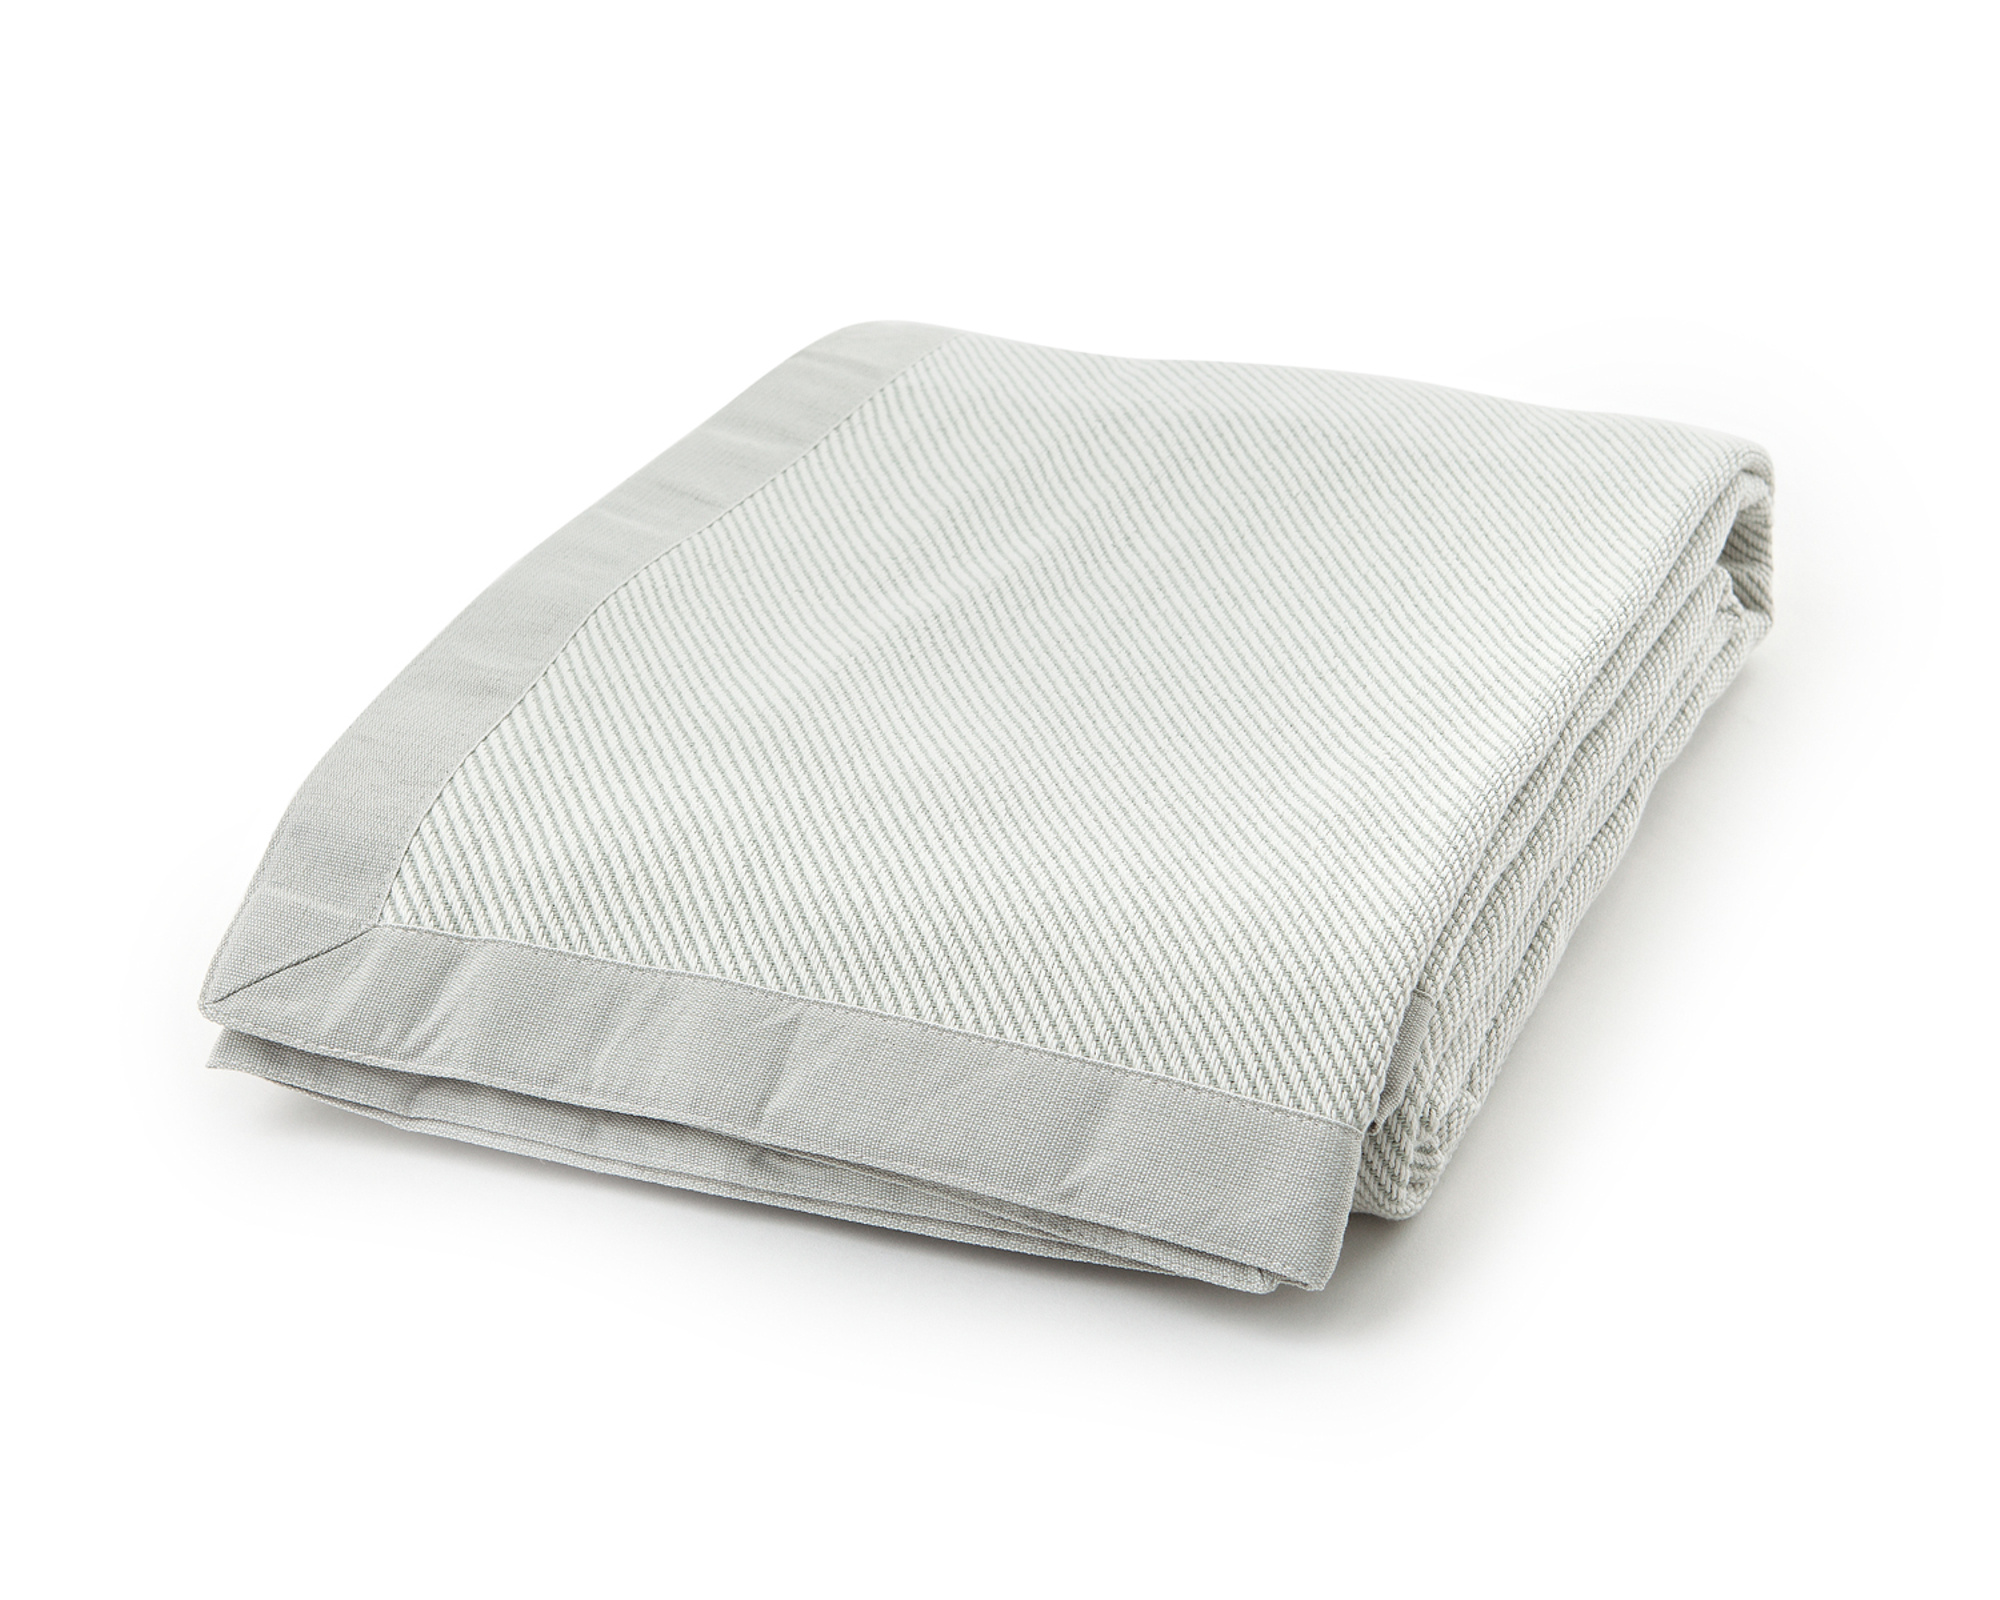 Urban Washed Bedspread